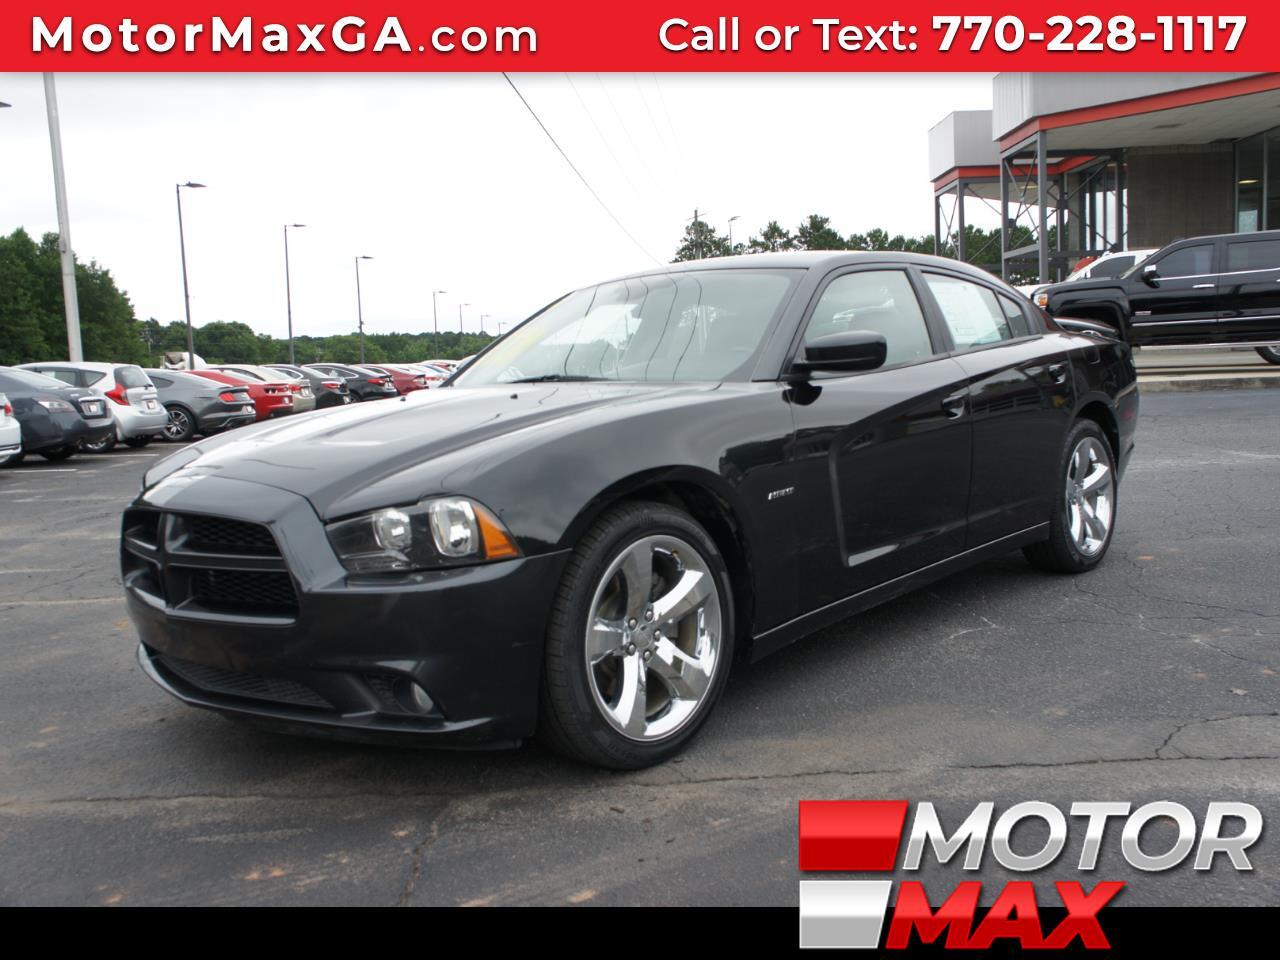 2011 Dodge Charger R/T HEMI